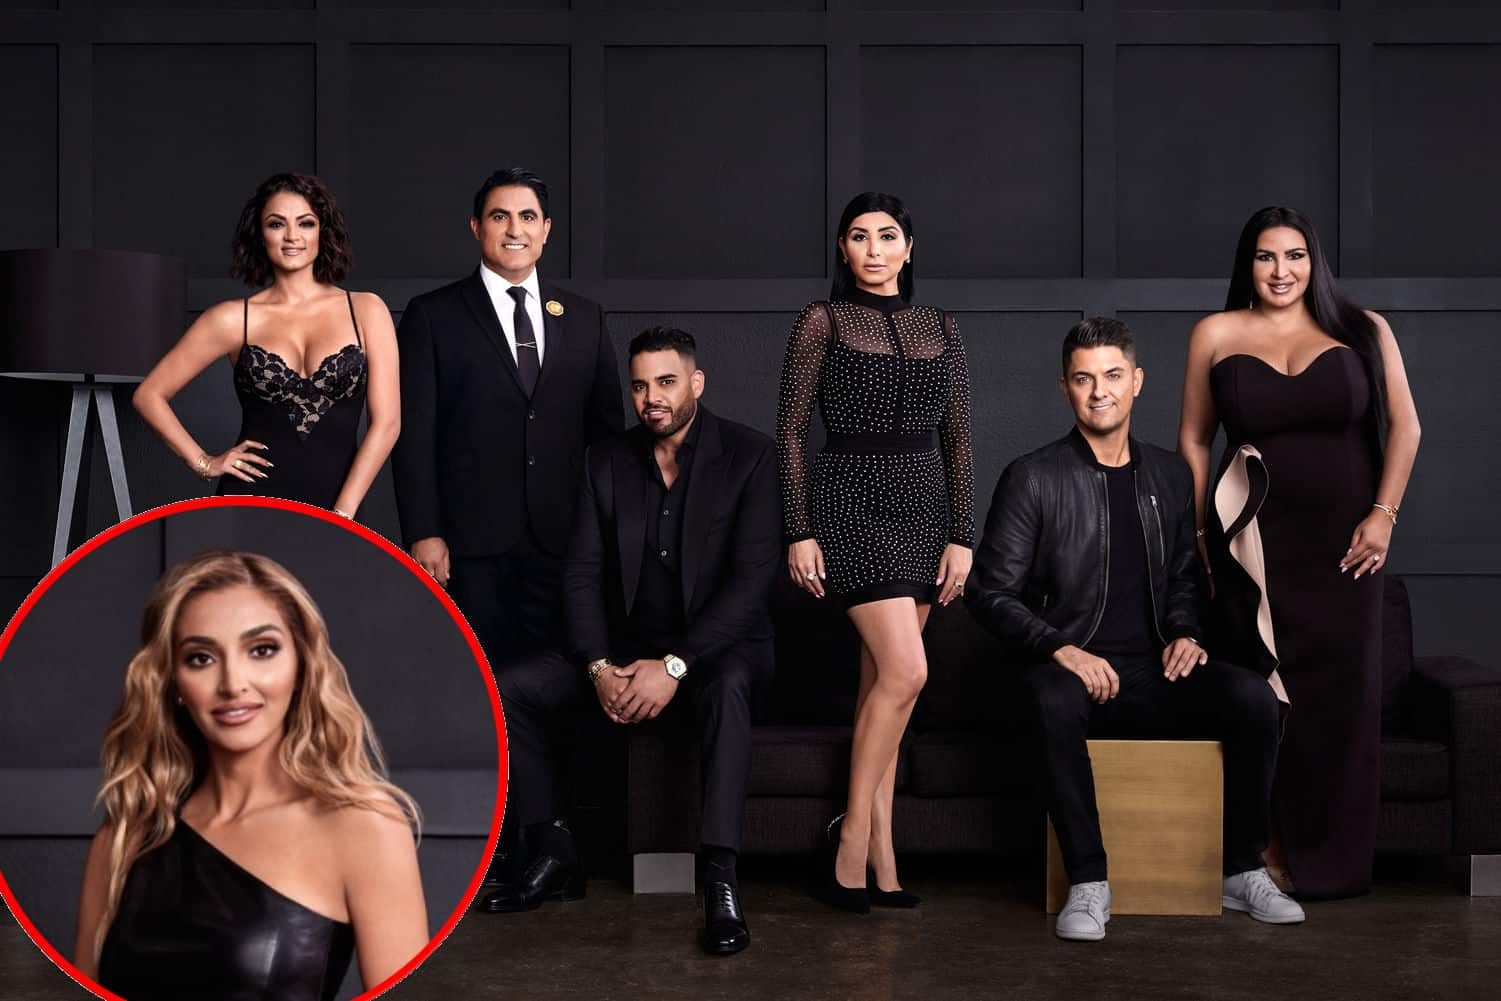 "VIDEO: Watch the Shahs of Sunset Season 8 Trailer! 'MJ' Javid and Reza Farahan's Friendship Implodes and Mike Shouhed Finds His Soulmate as R. Kelly's Ex Sara Jeihooni Joins Cast Shahs of Sunset 2020 Cast - Destiney Rose, Golnesa ""GG"" Gharachedaghi, Mercedes ""MJ"" Javid, Mike Shouhed, Reza Farahan, and Nema Vand"